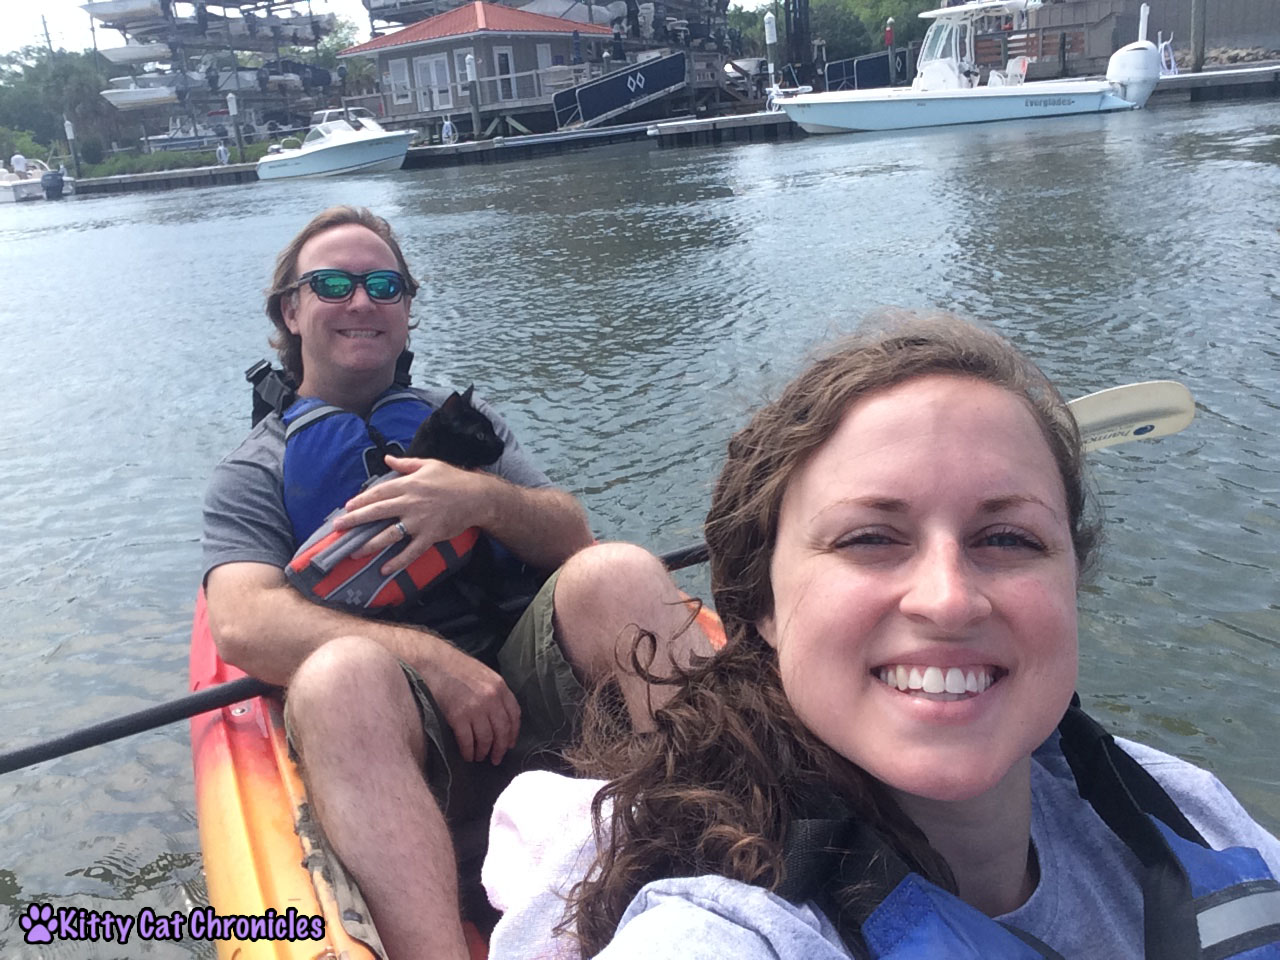 Charleston Adventure Teasers: Kylo Ren, cat kayaking